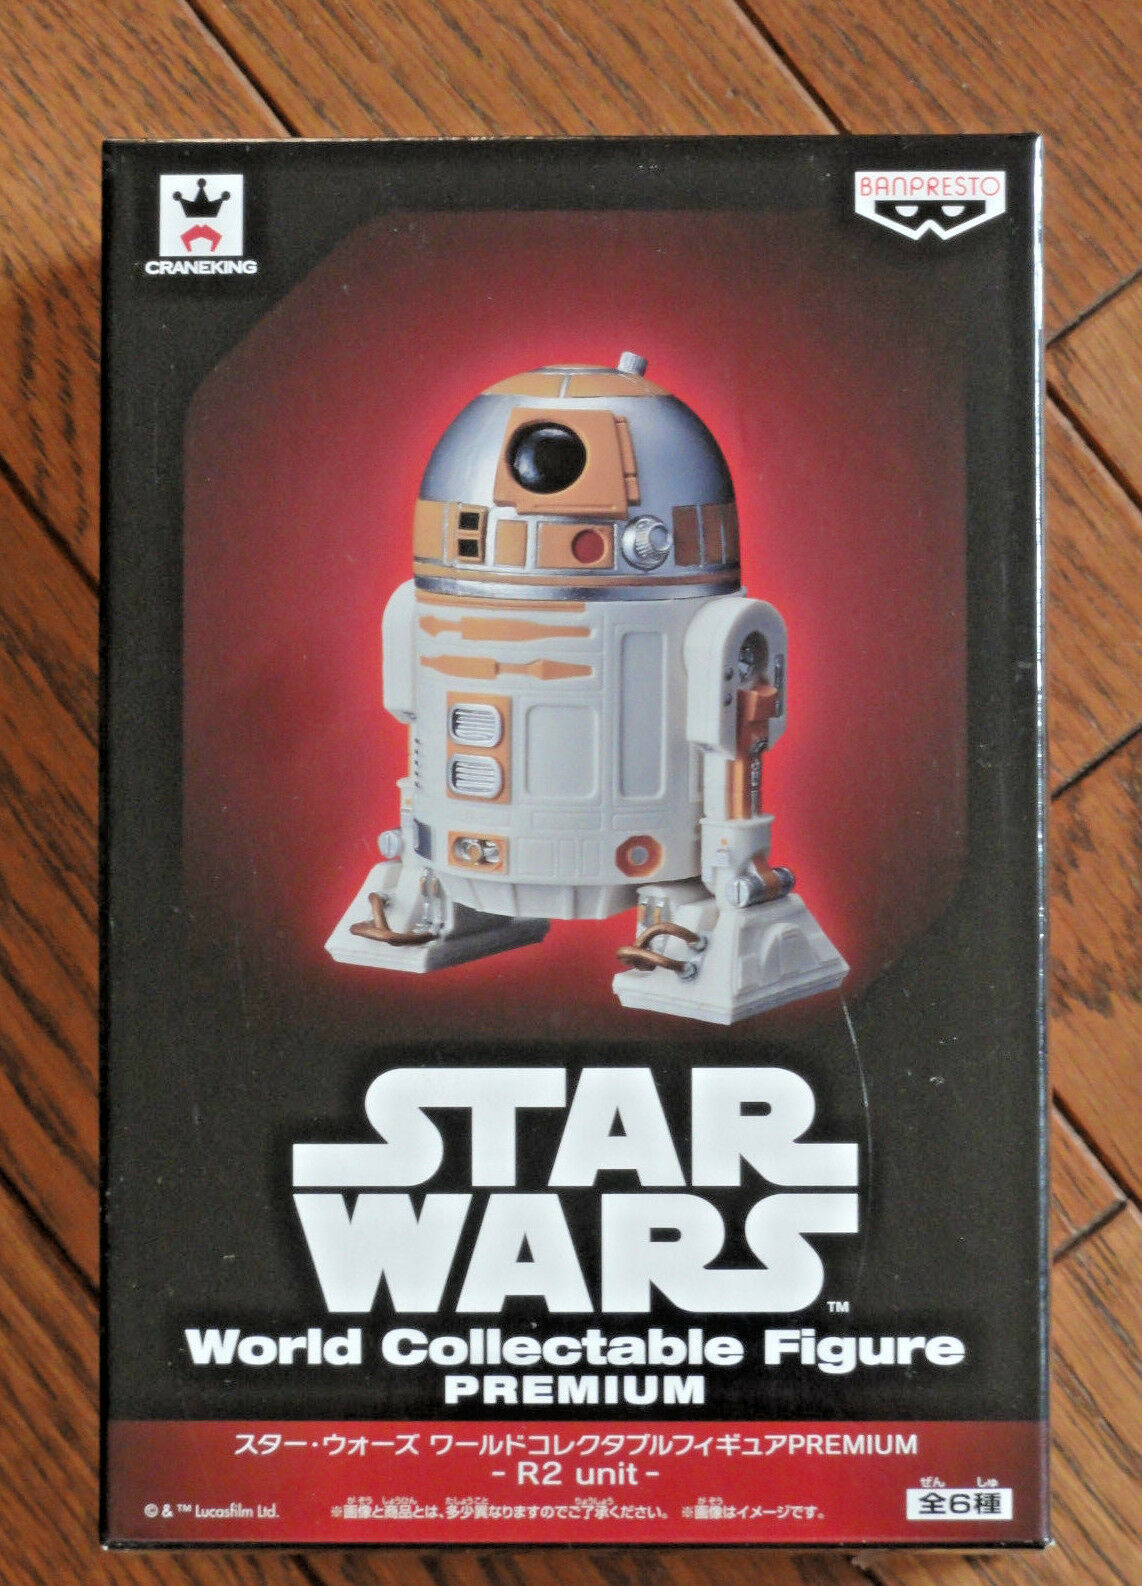 R2-D3 - B type Star Wars World Collectable Figure Premium